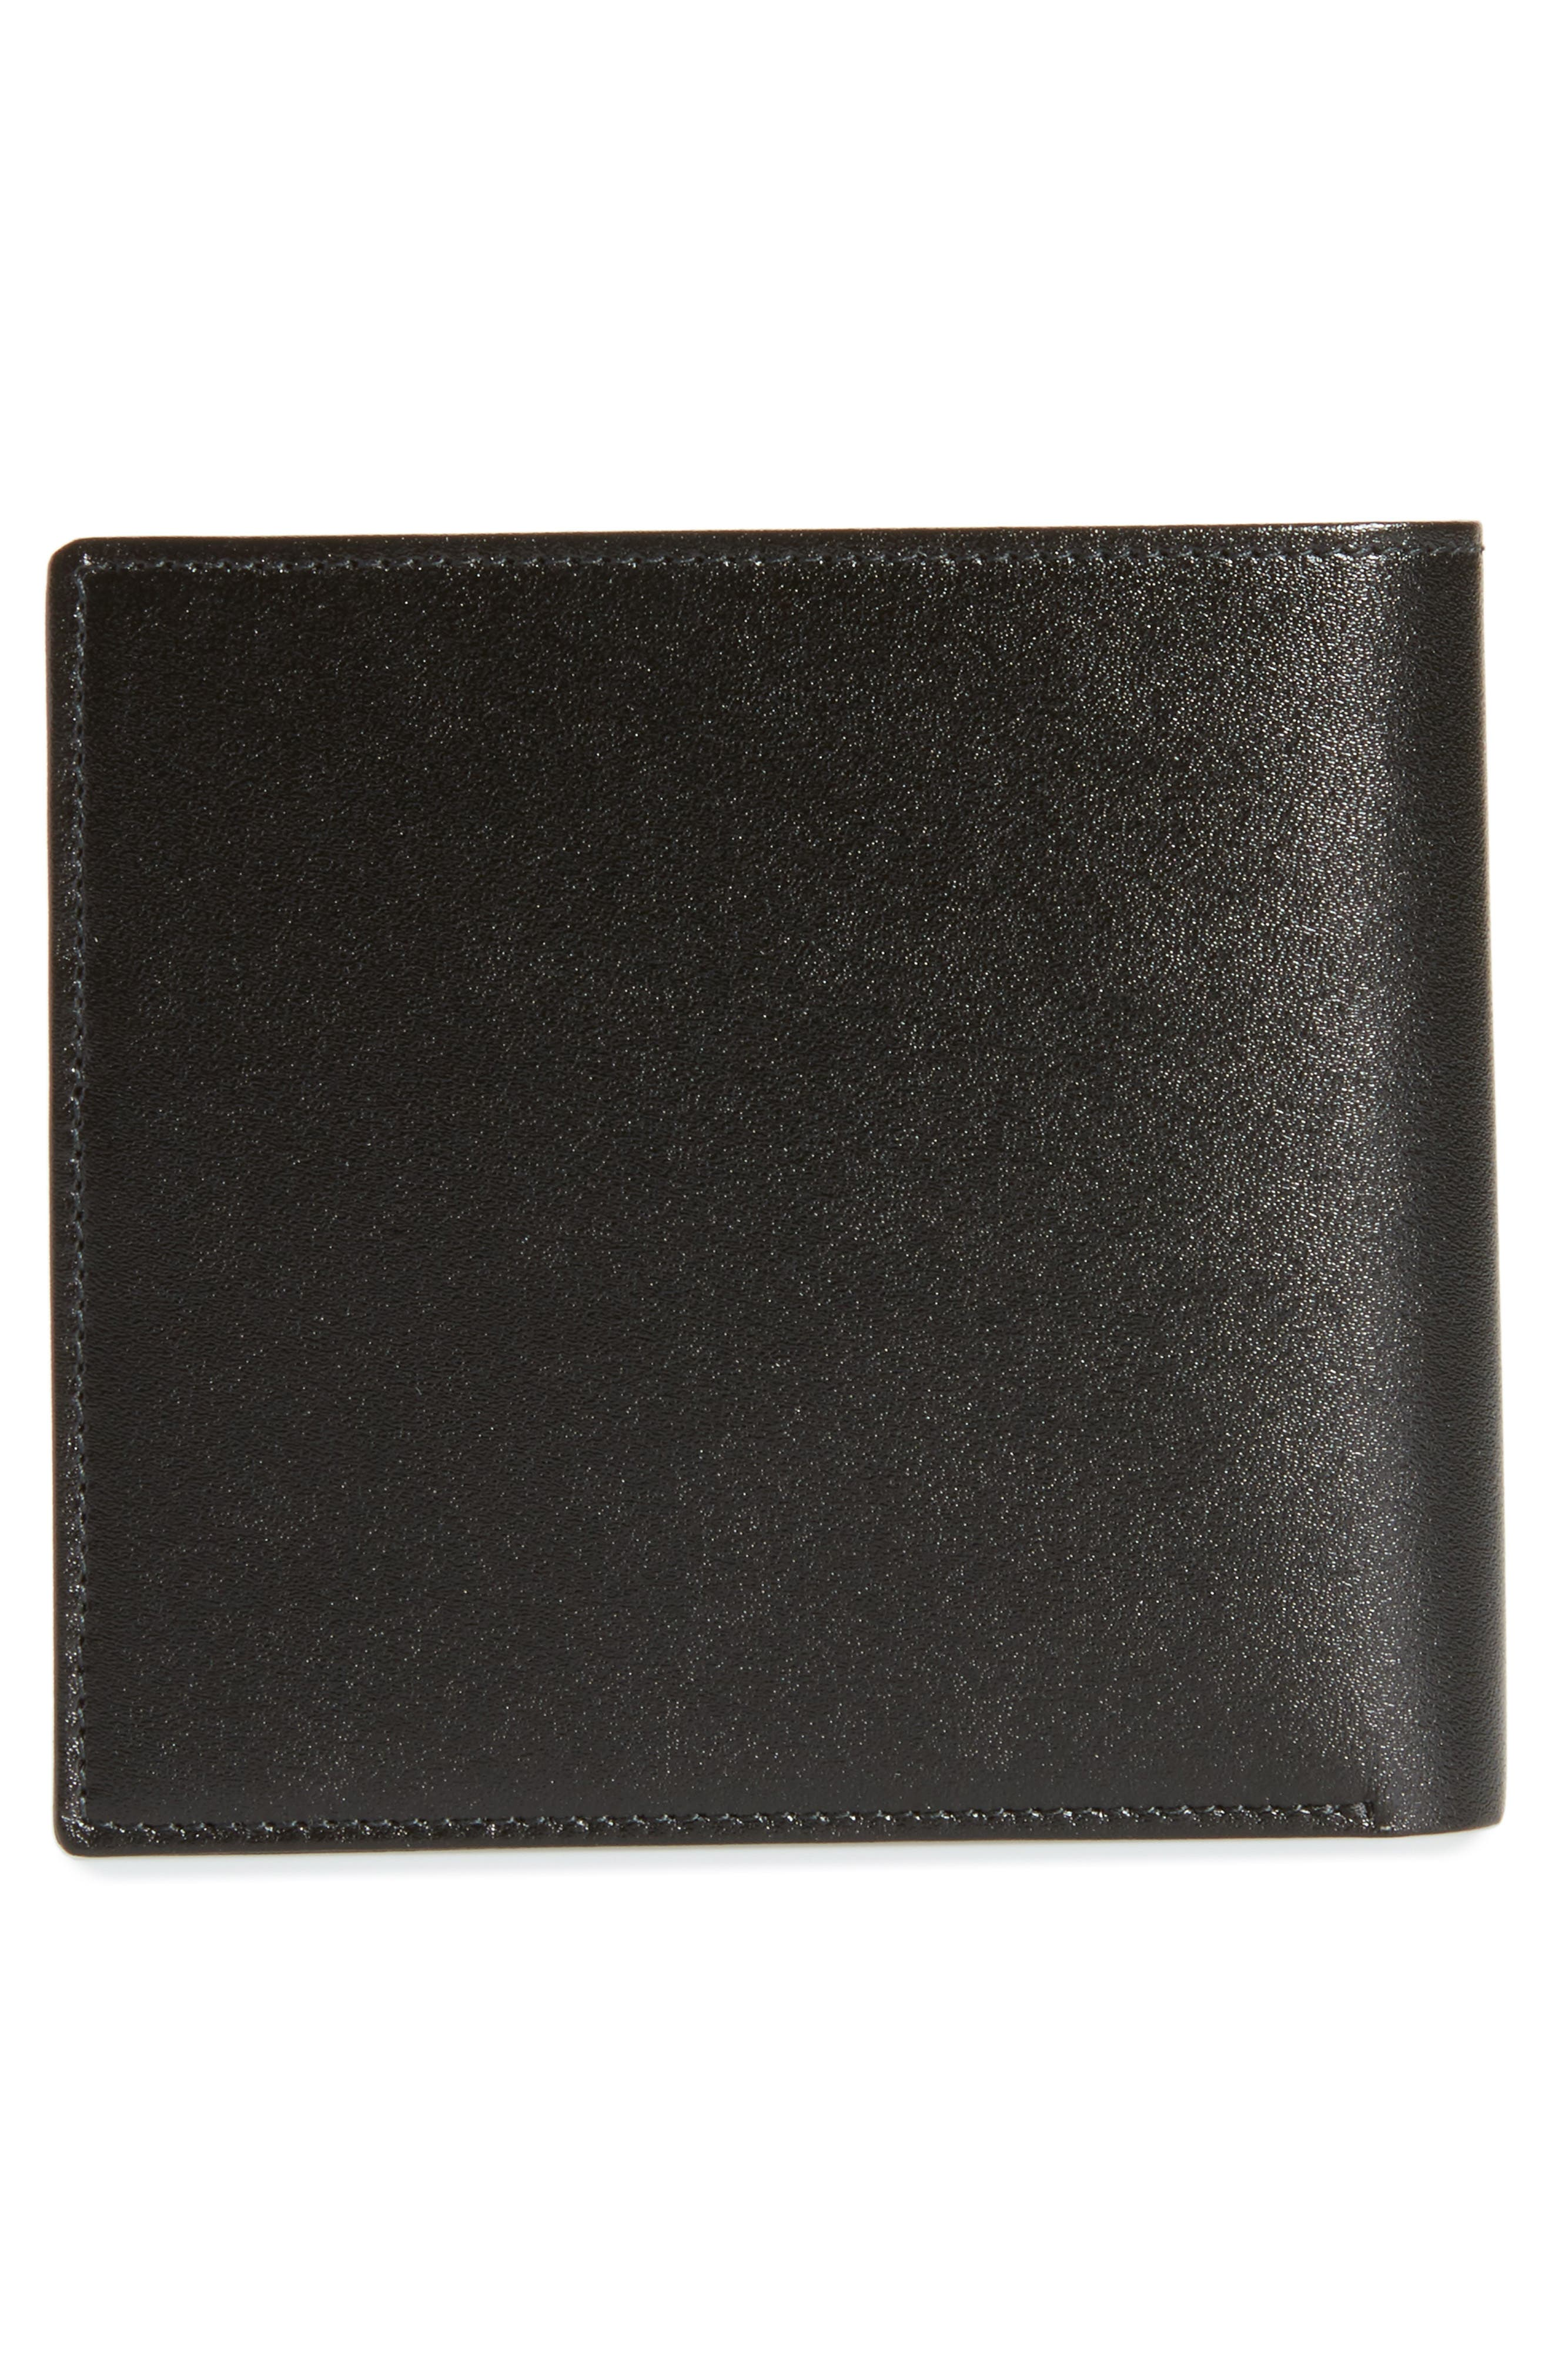 Meisterstück Leather Wallet,                             Alternate thumbnail 3, color,                             Black